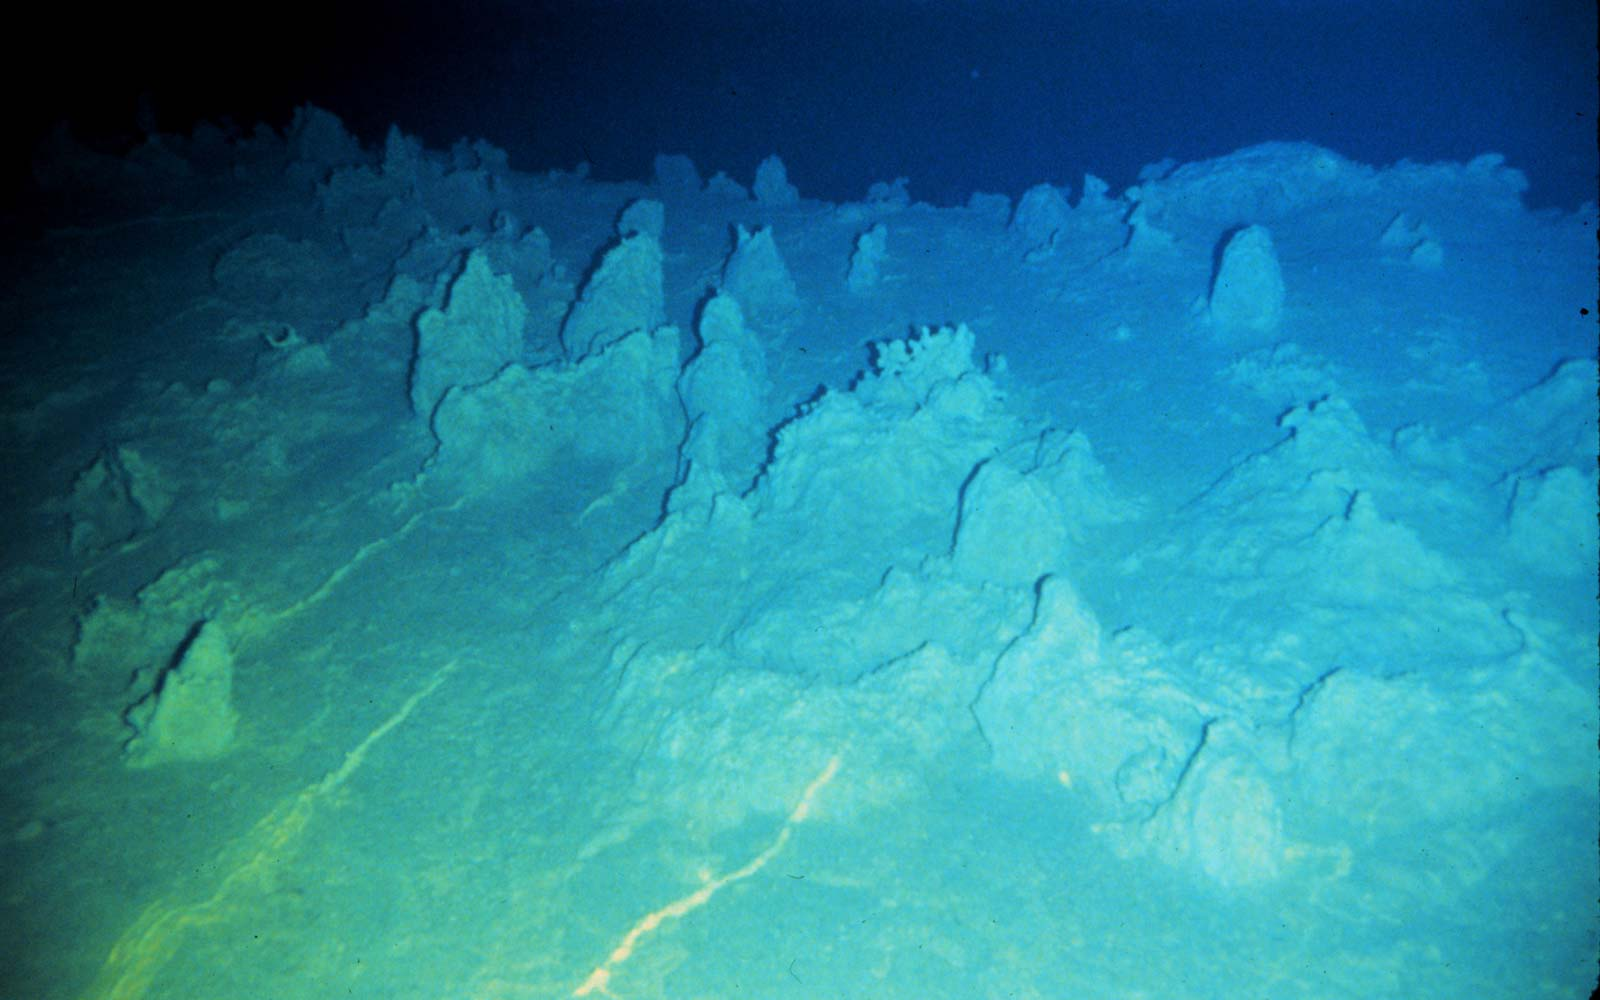 View of the underwater Loihi volcano surface in Hawaii